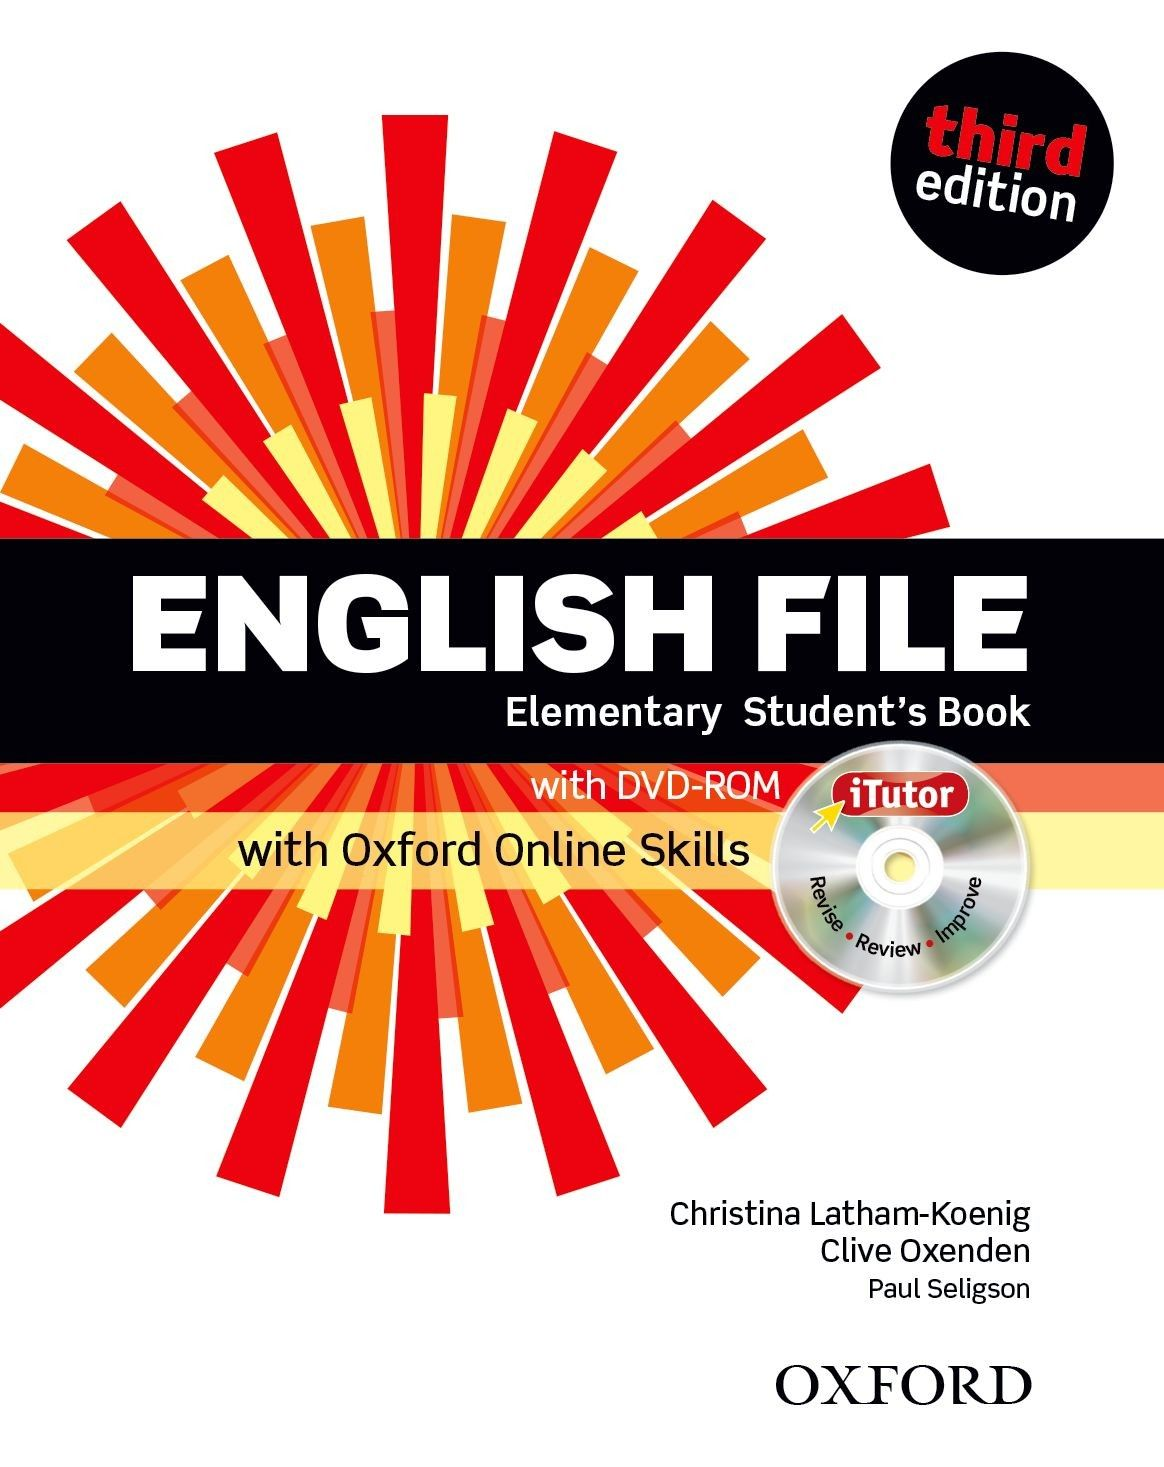 Check out our new product english file elementary students book cod check out our new product english file elementary students book cod rs585 fandeluxe Image collections